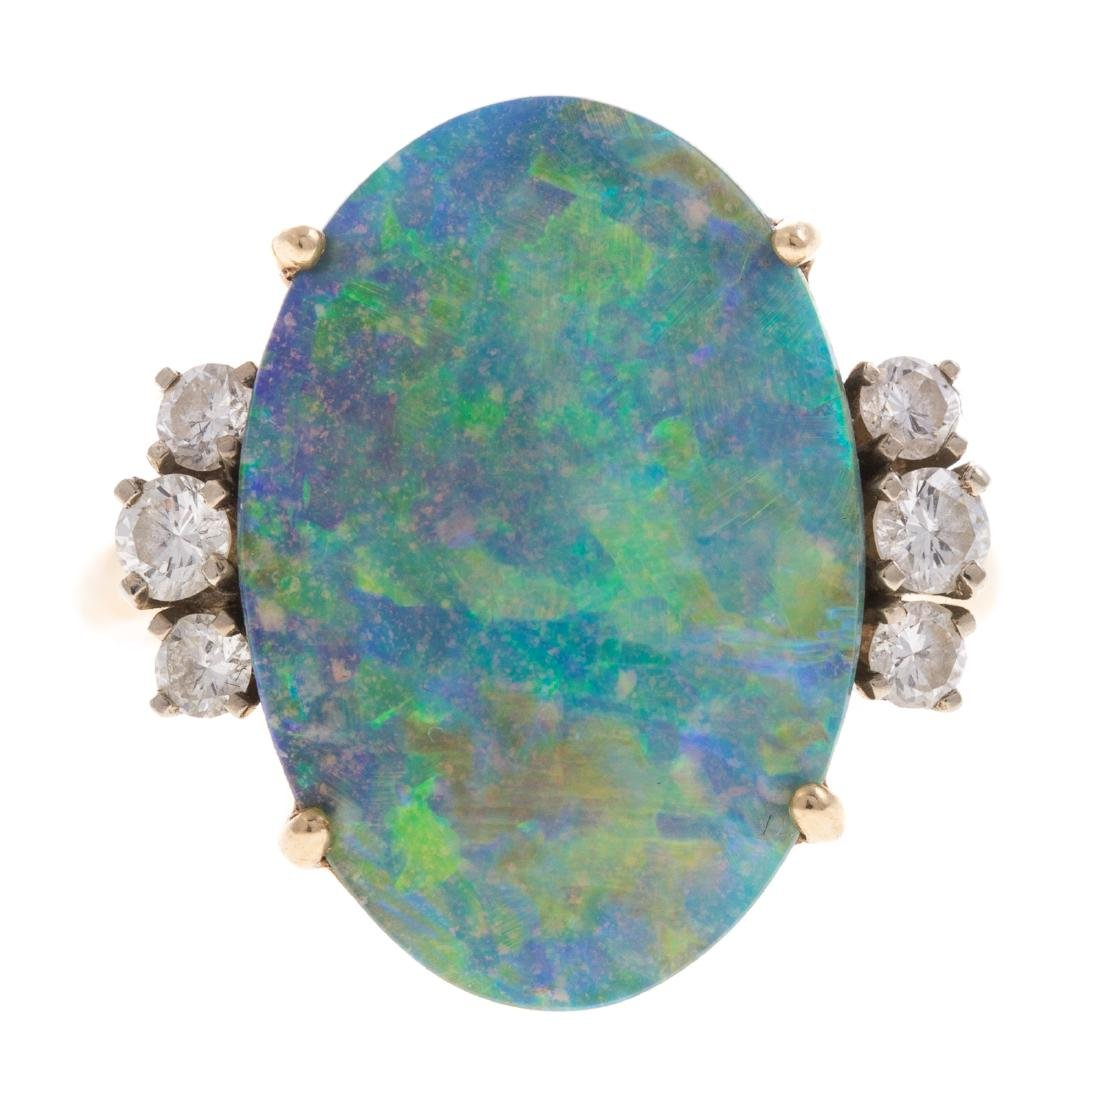 A Lady's 14K Opal and Diamond Ring